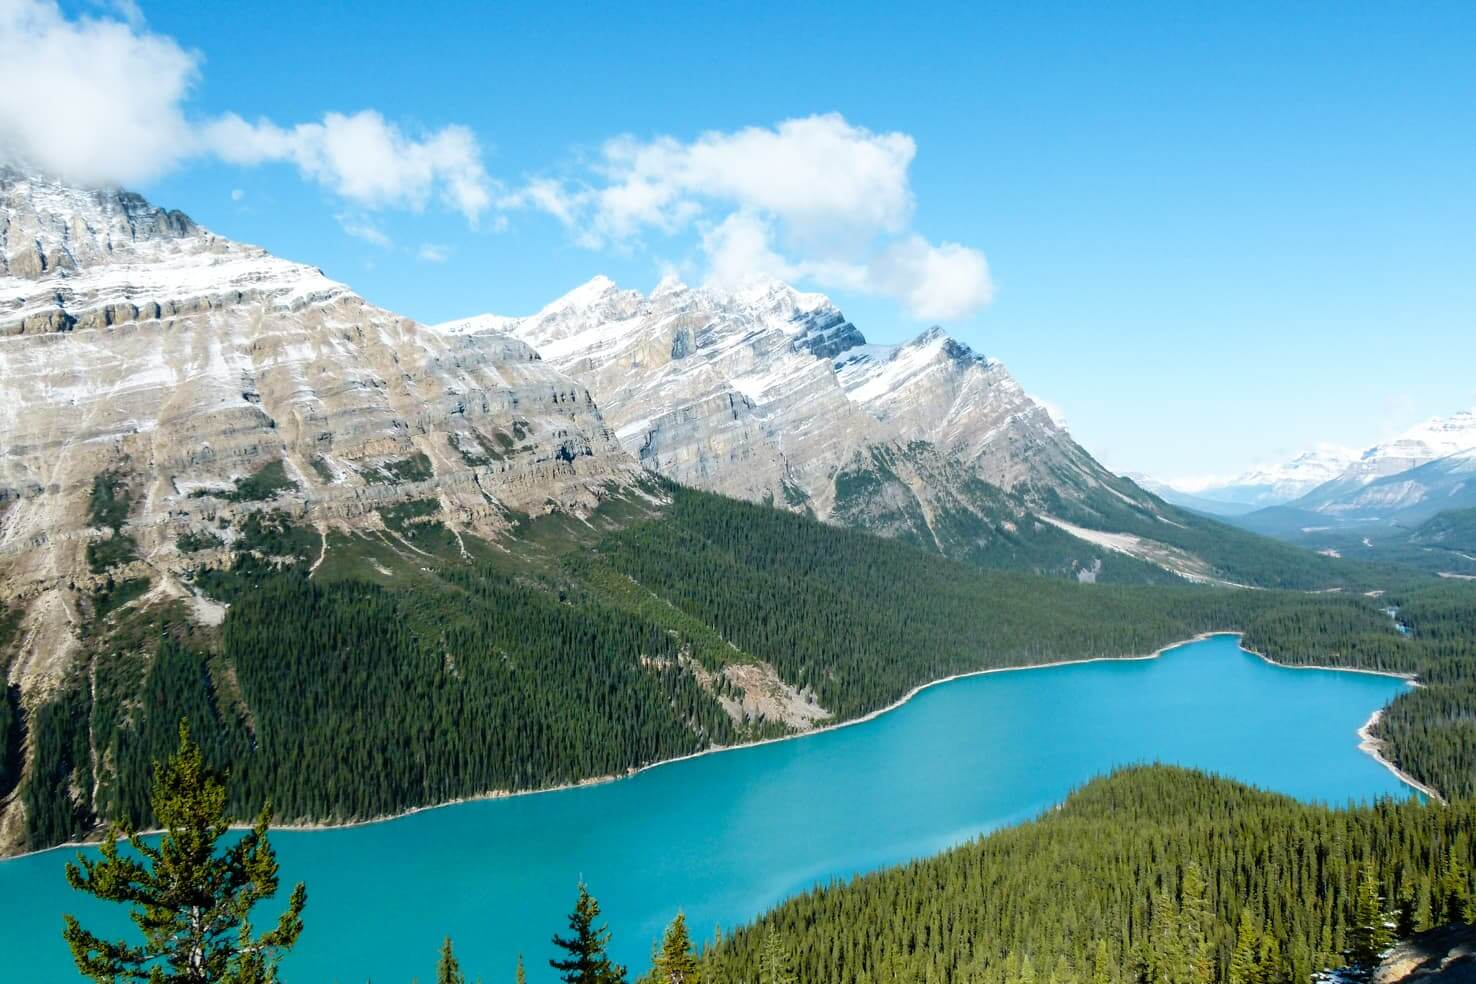 100 best things to do in Banff National Park, Canada - Visit the insanely blue Peyto Lake